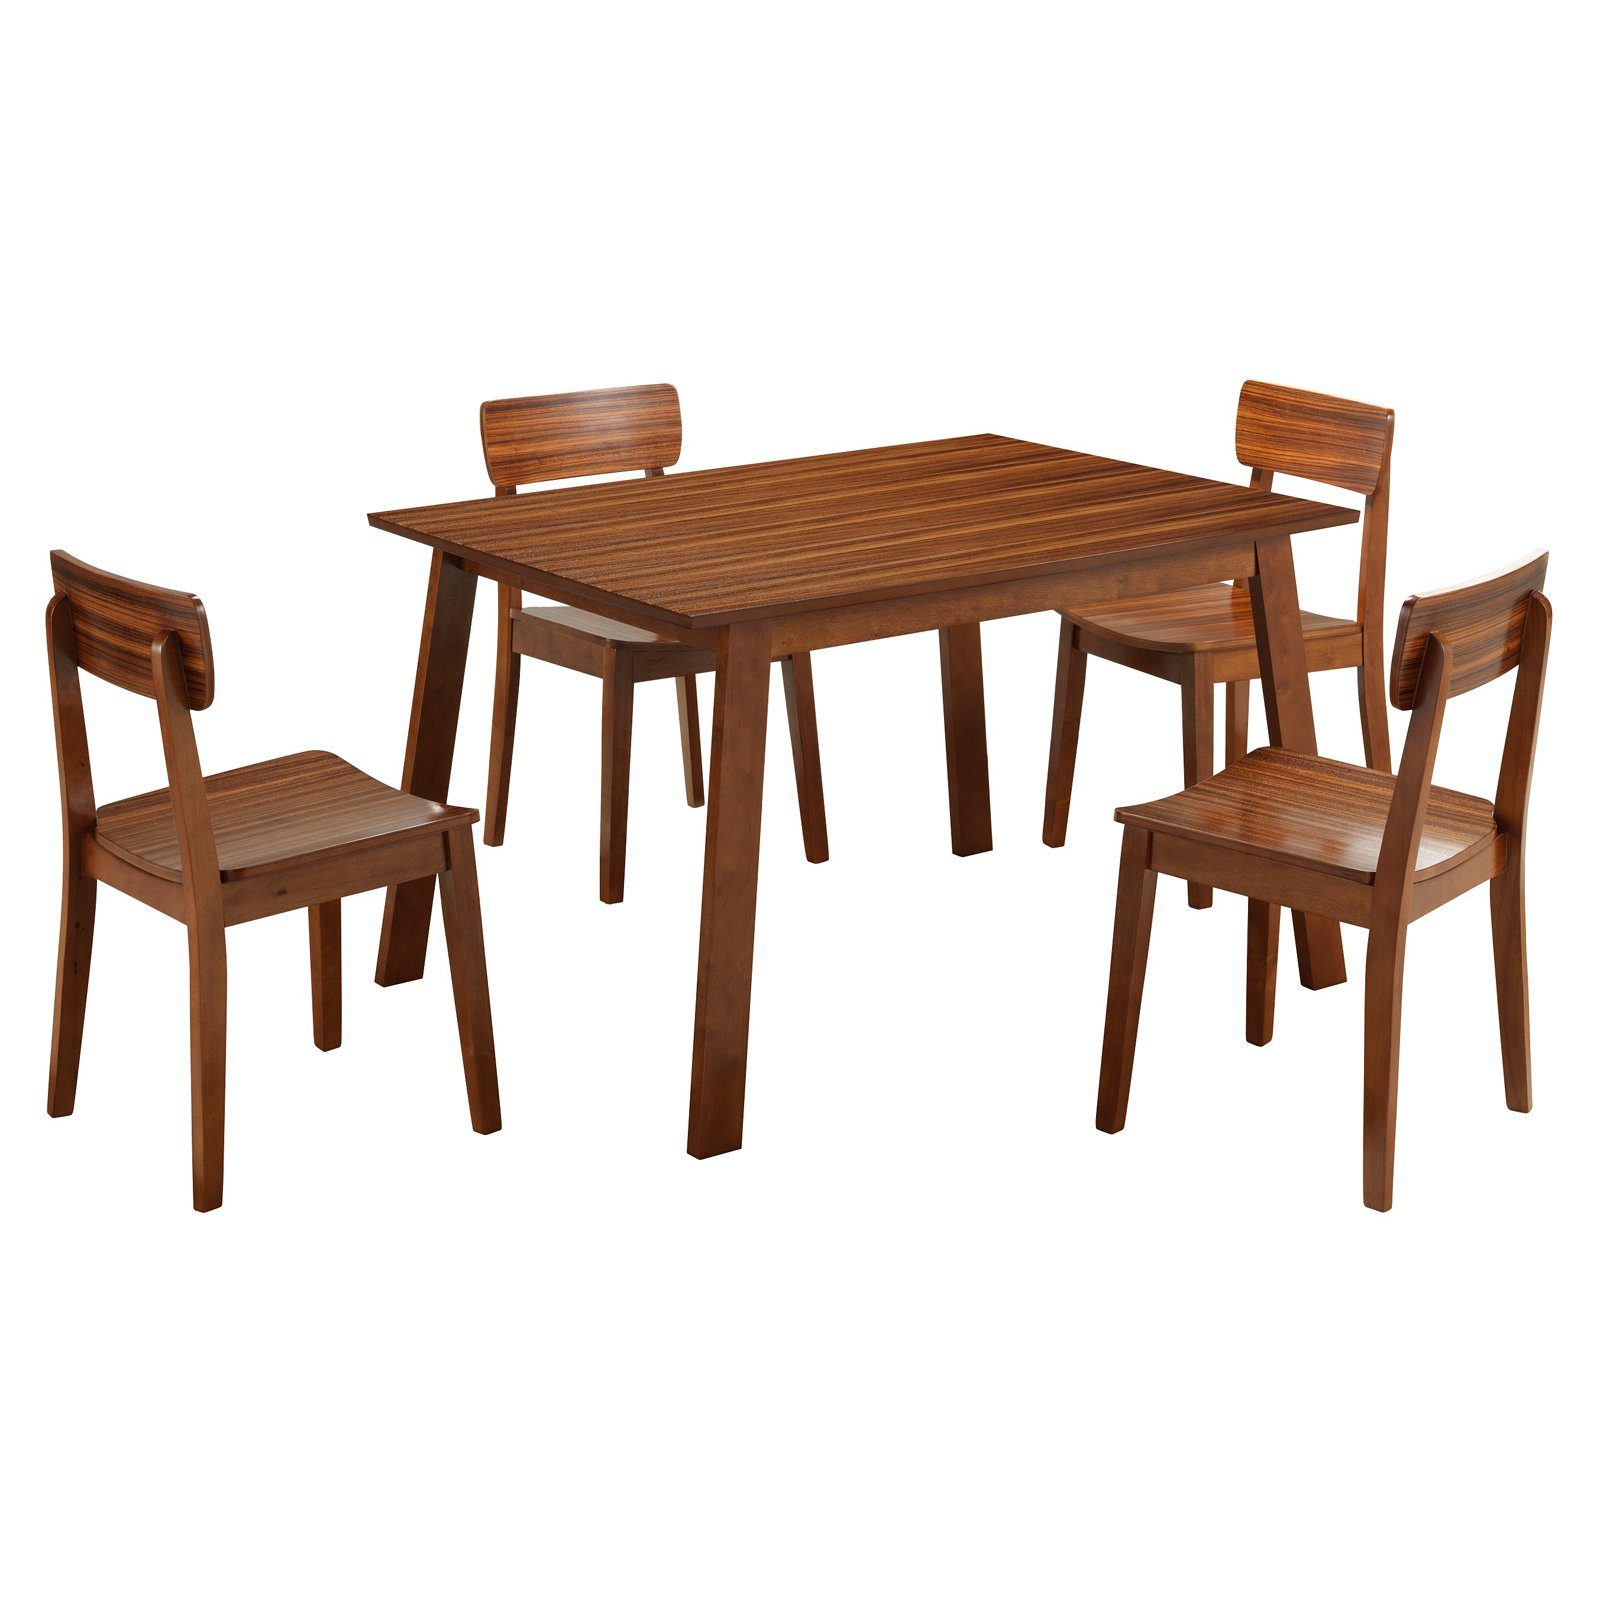 Boraam Hagen 5-Piece Zebra Series Dining Room Set, Walnut by Boraam Industries